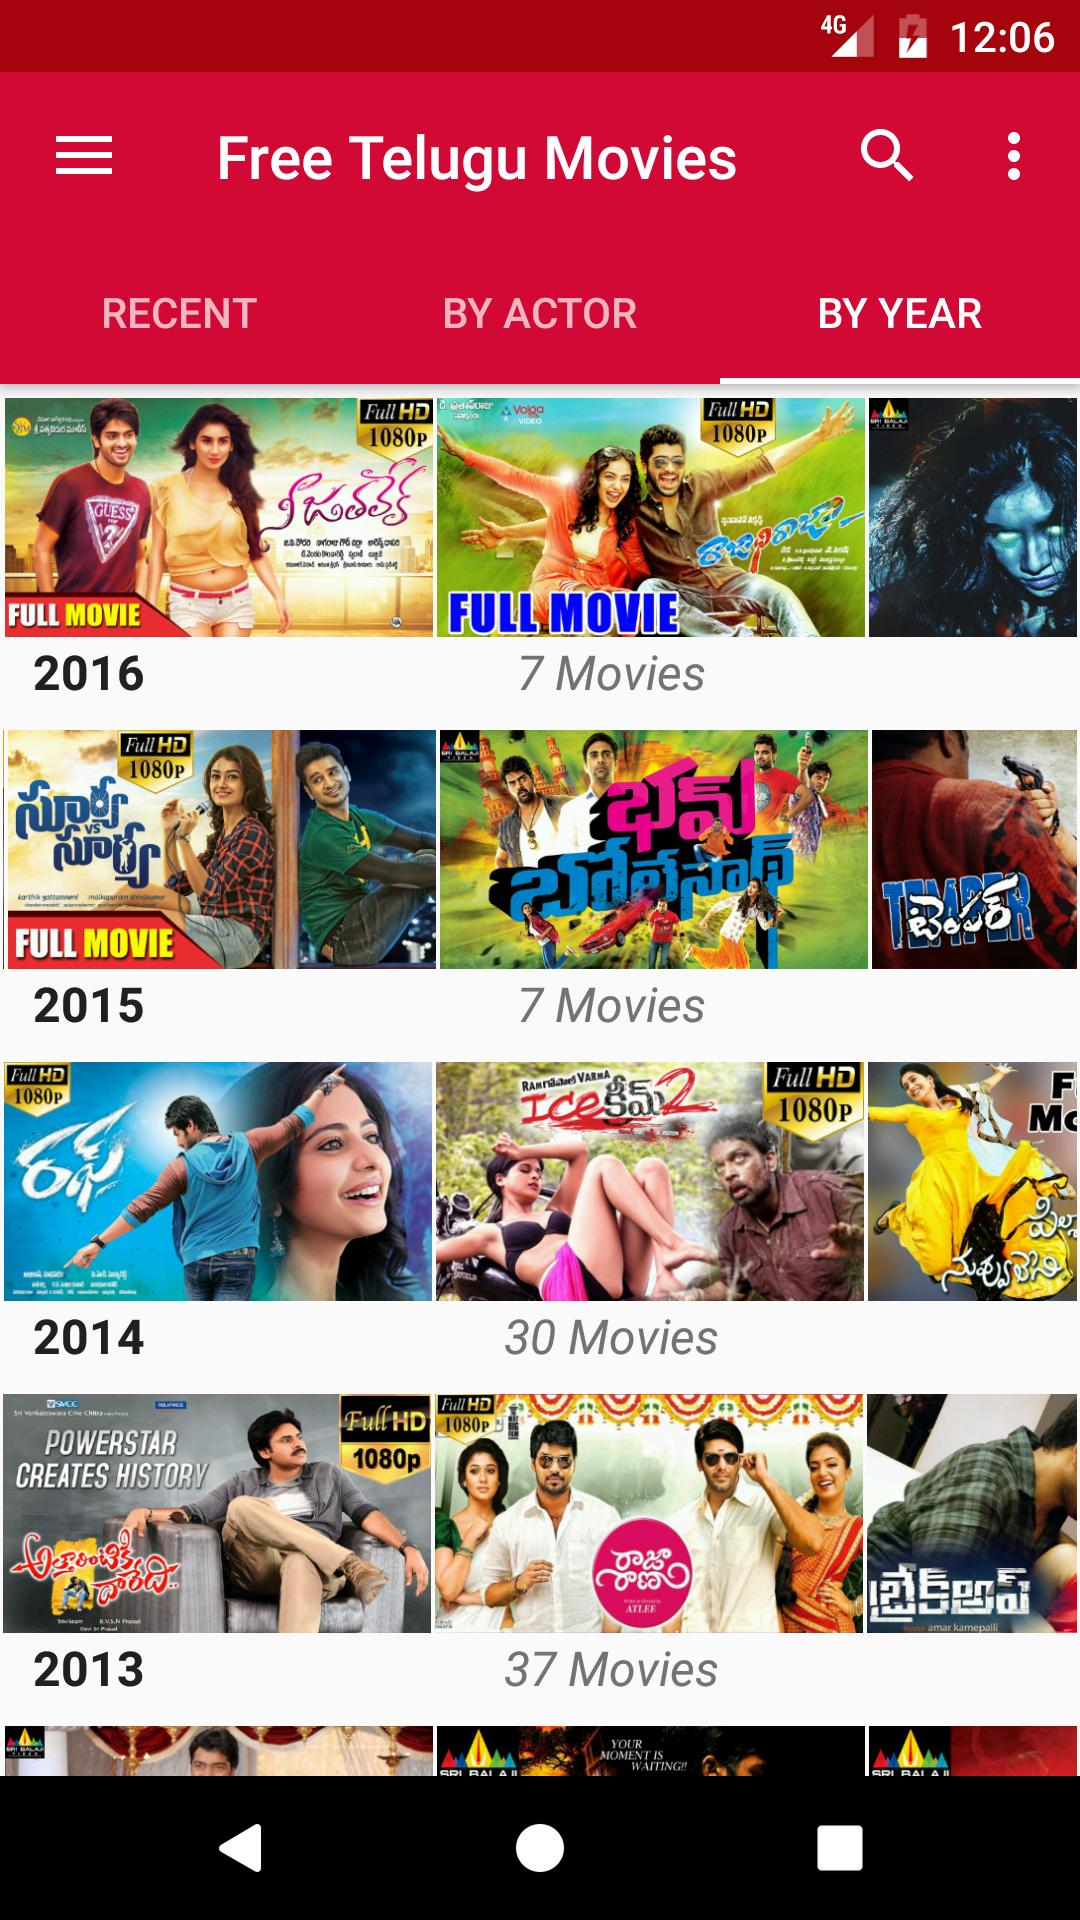 Free Telugu Movies for Android - APK Download